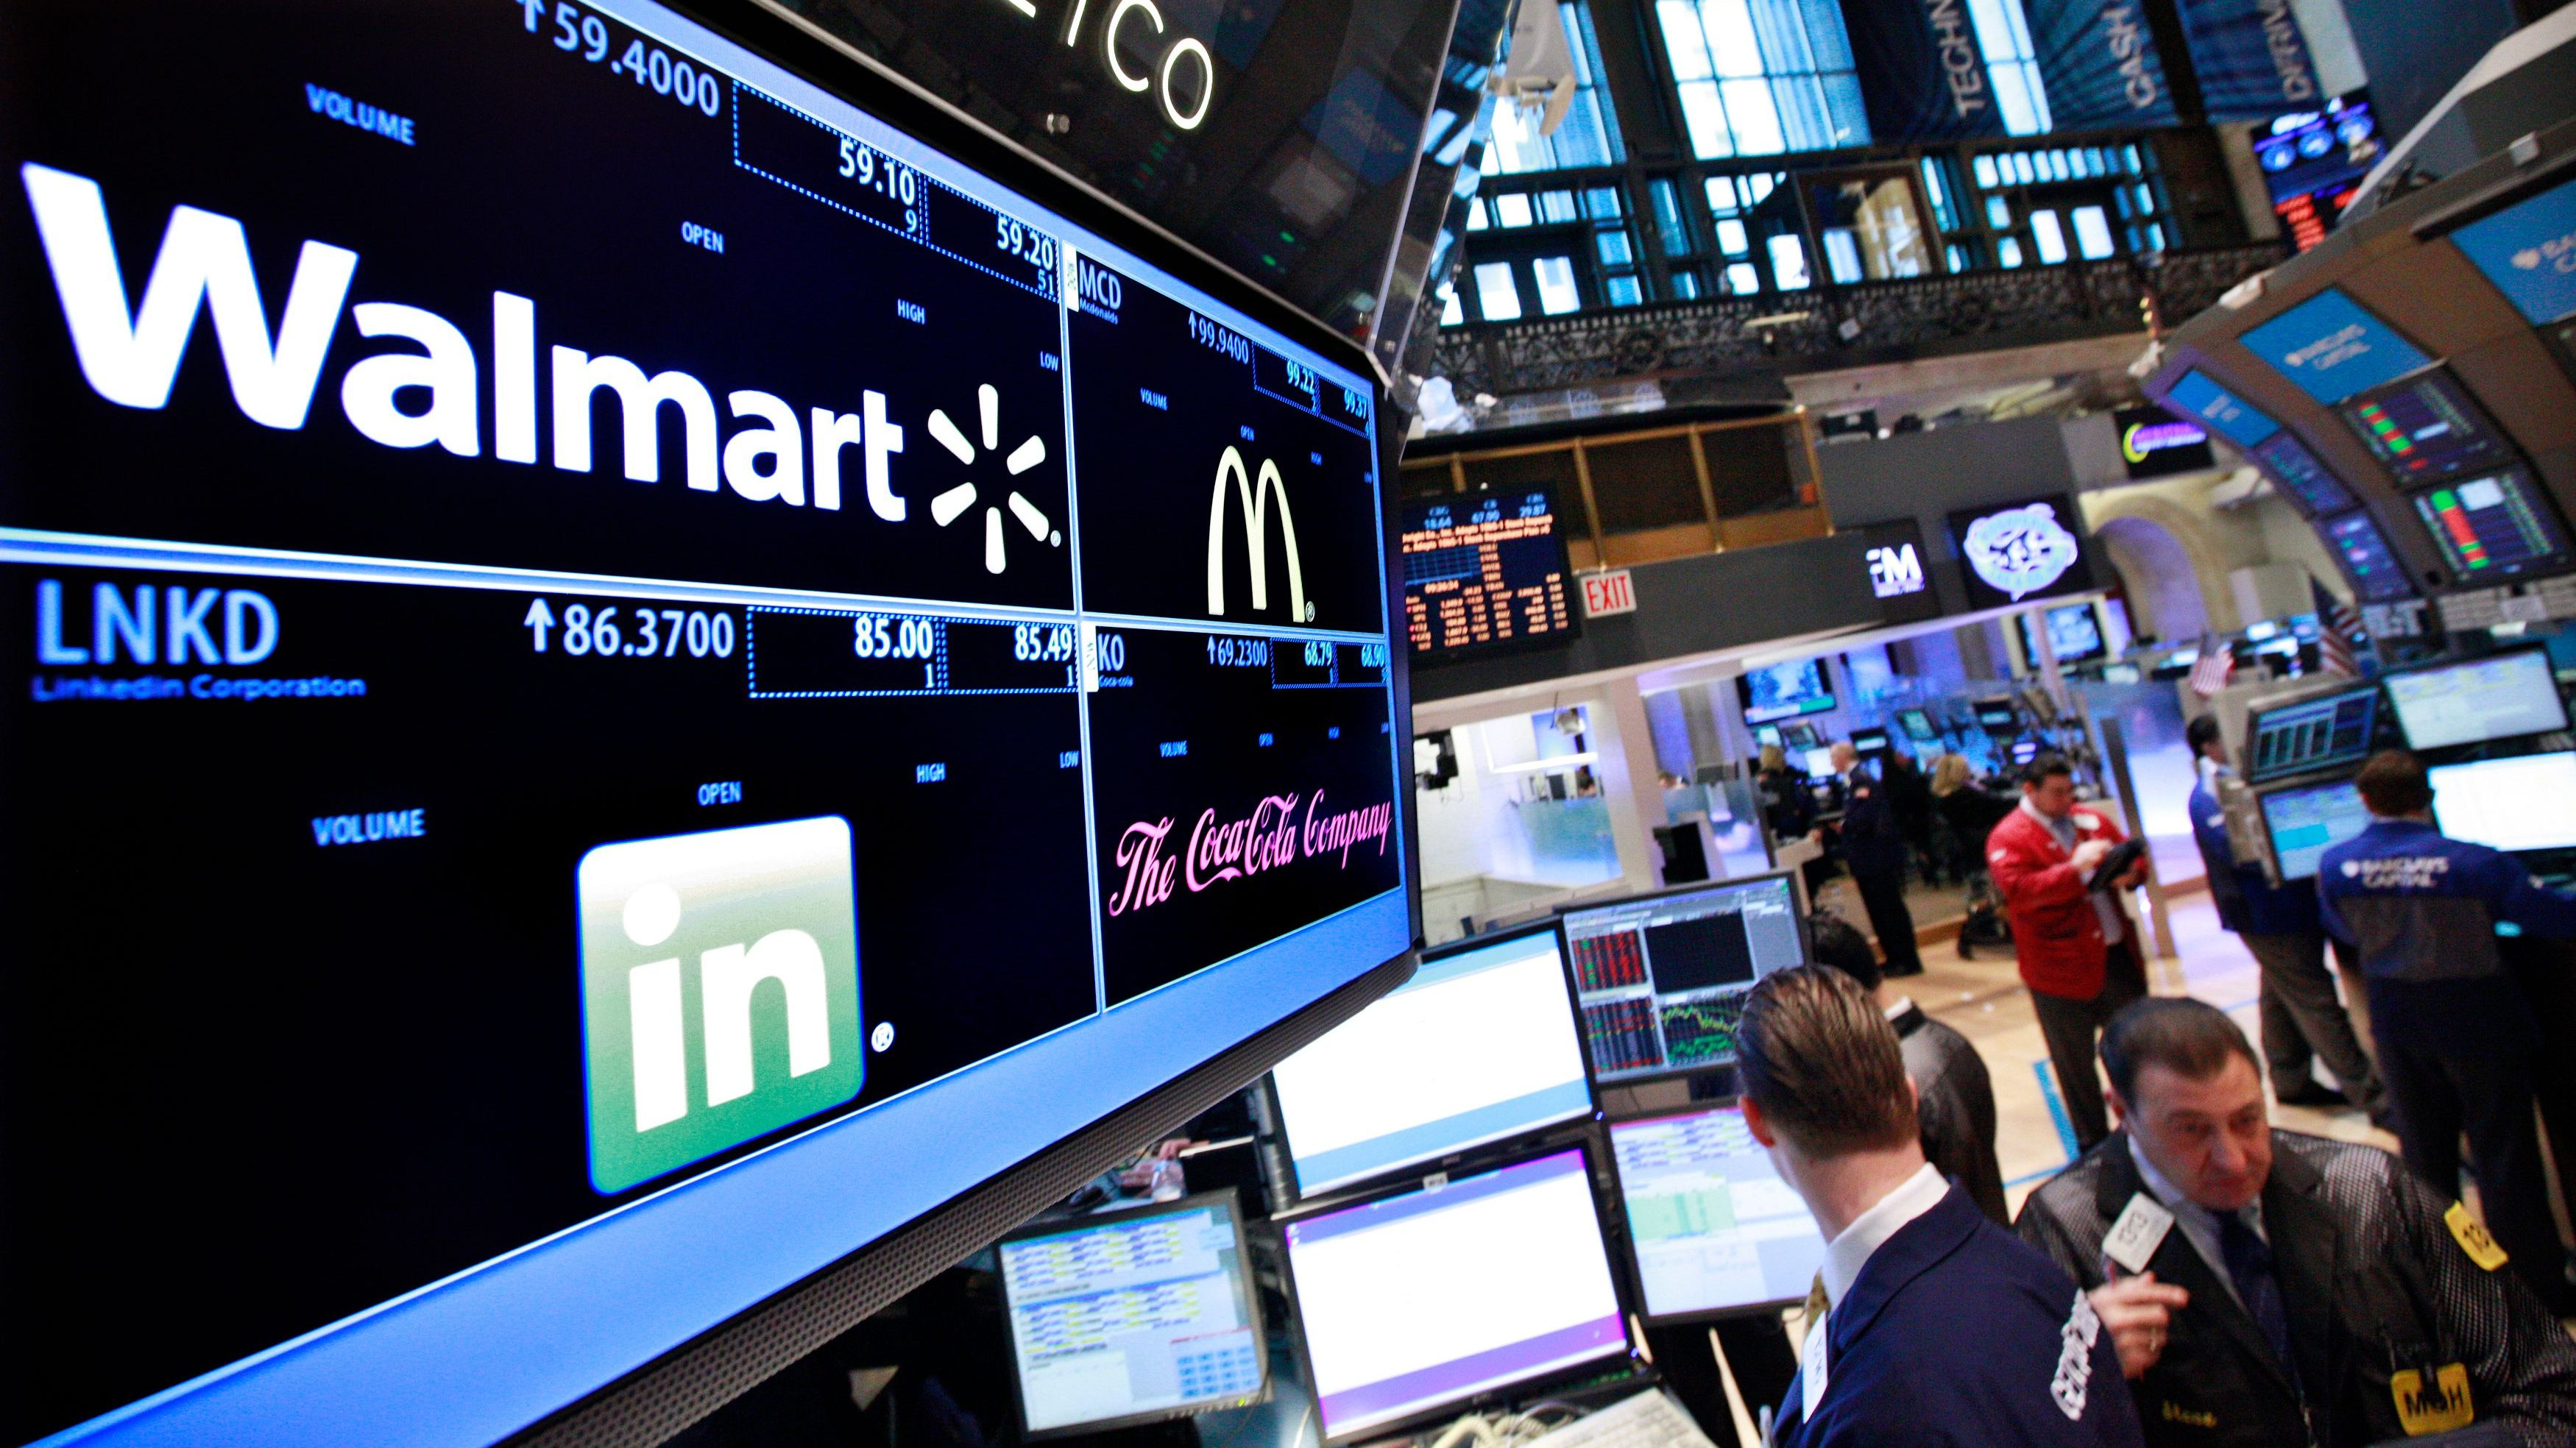 A board shows stock prices for Walmart, Linkedin, McDonald's and Coca-Cola at the booth they are traded on the floor of the New York Stock Exchange